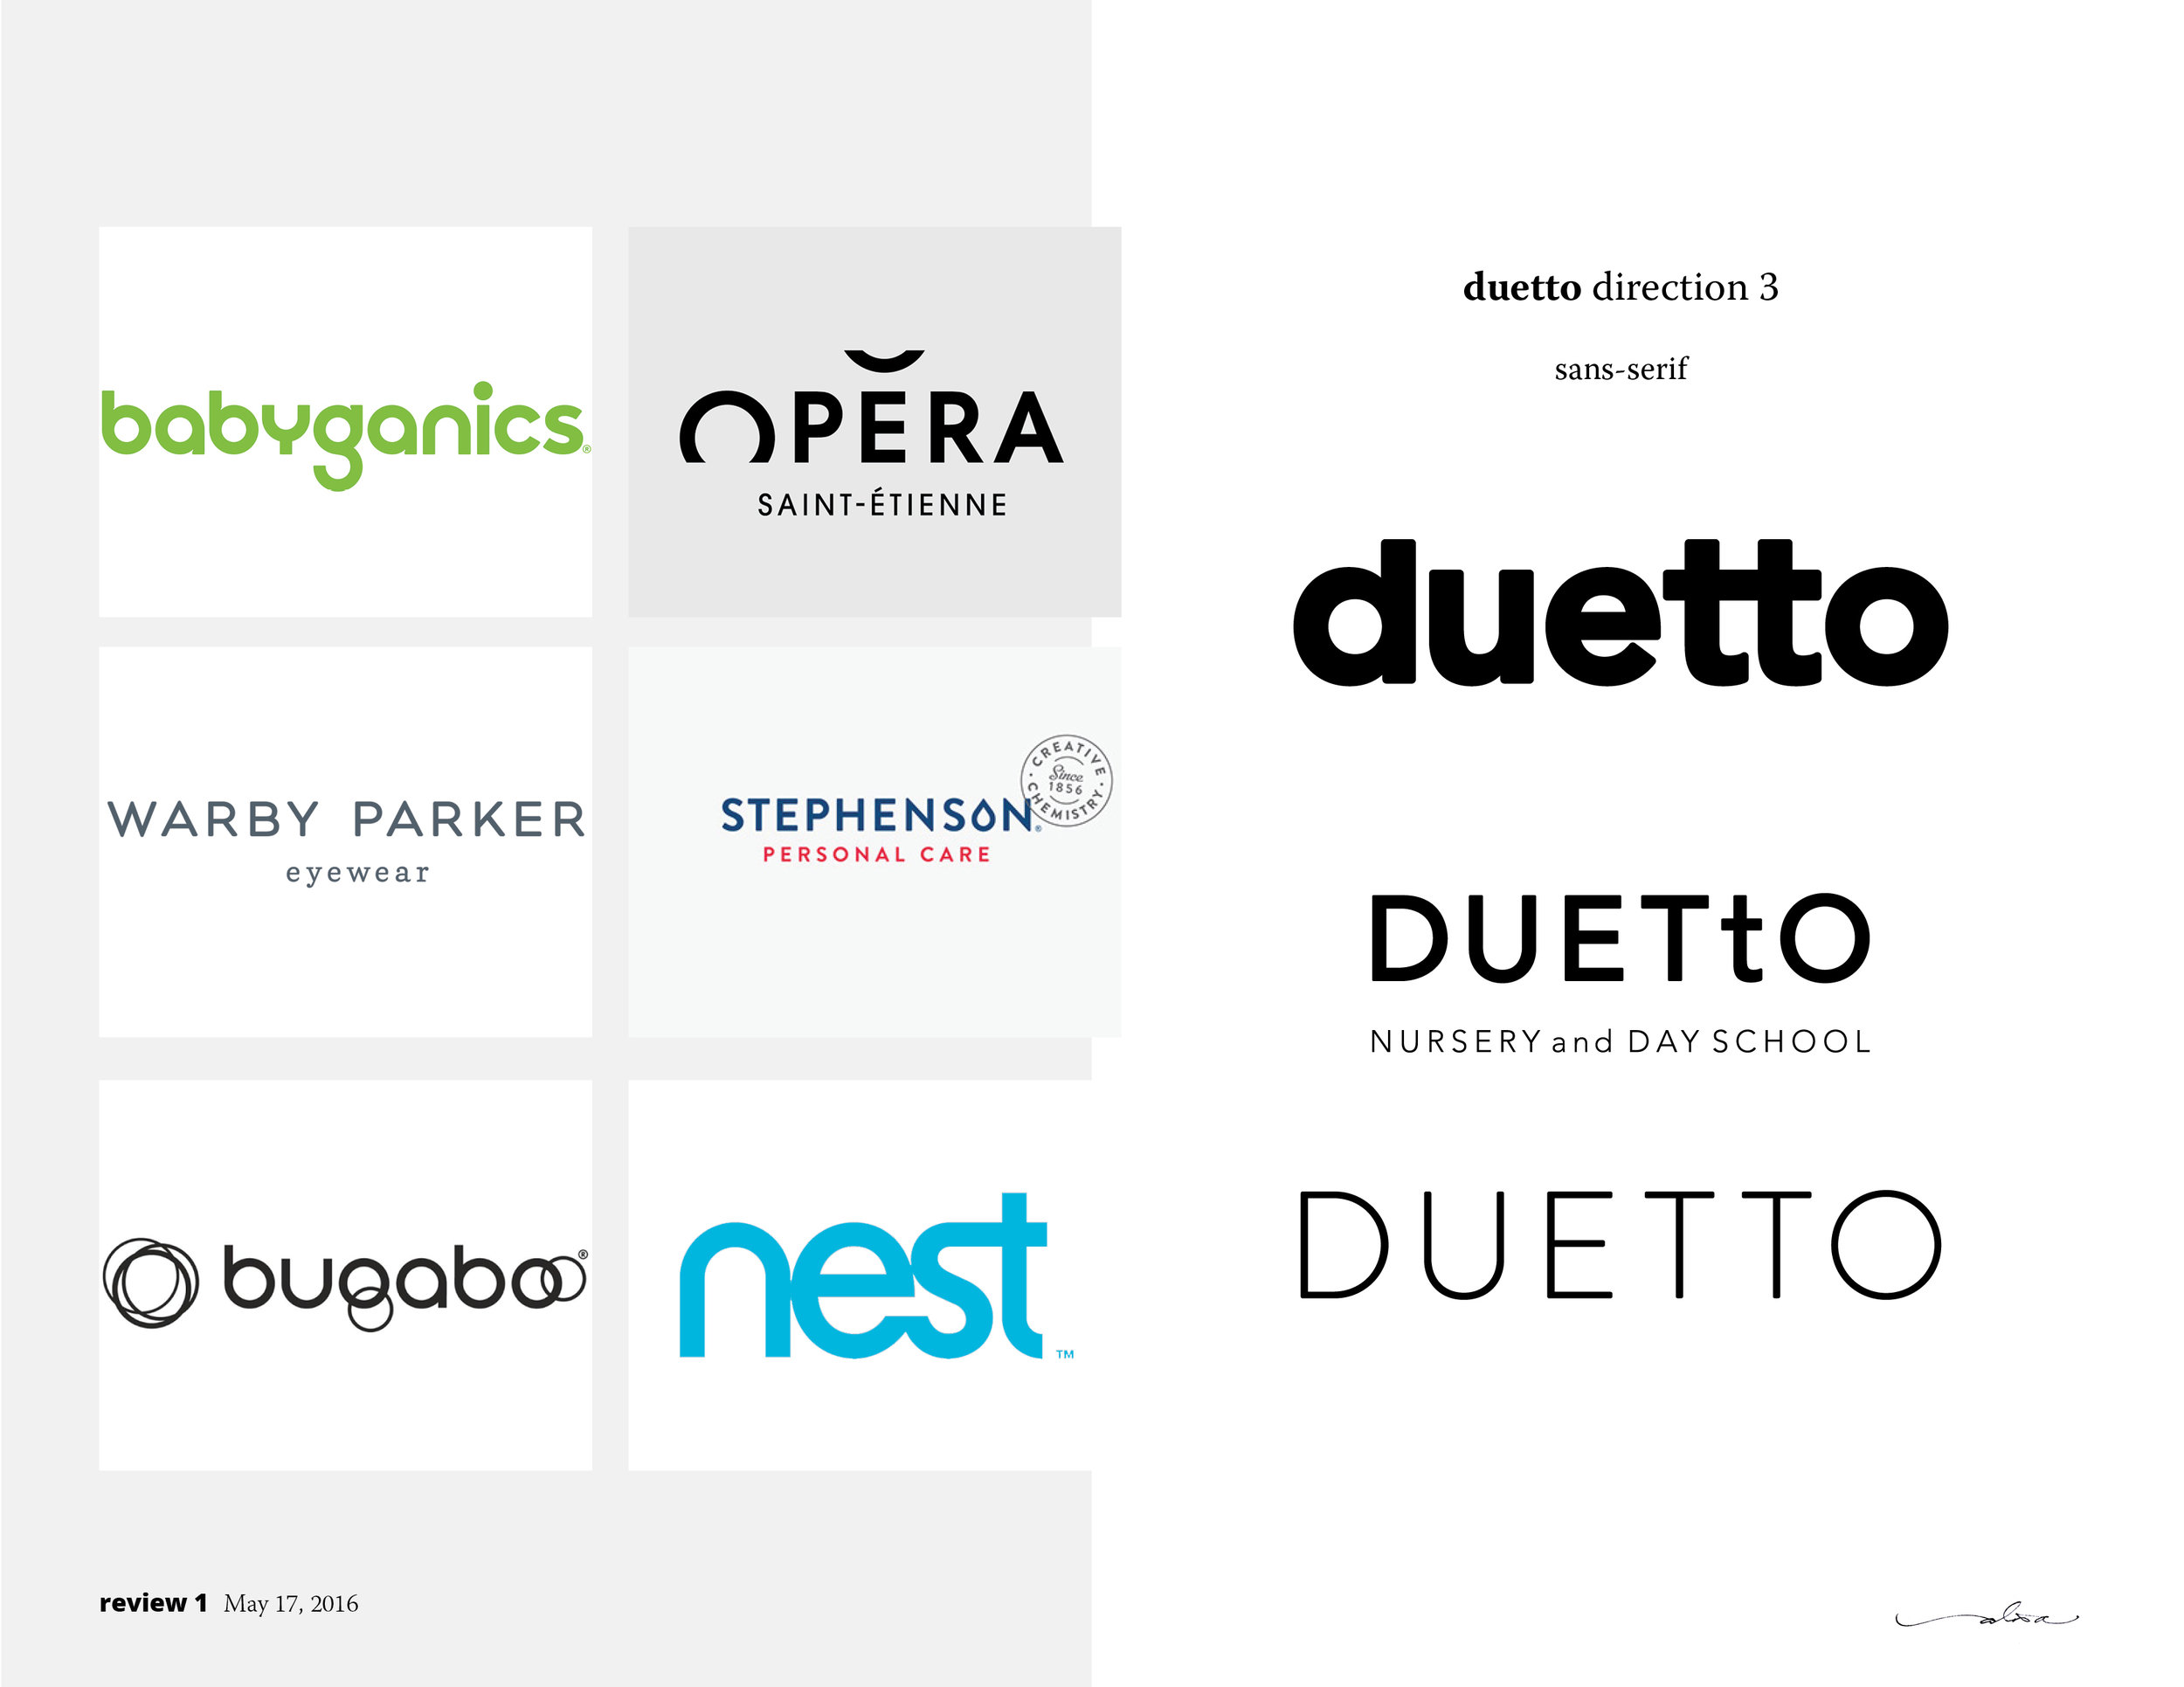 20160517_Duetto-Review1_v13.jpg